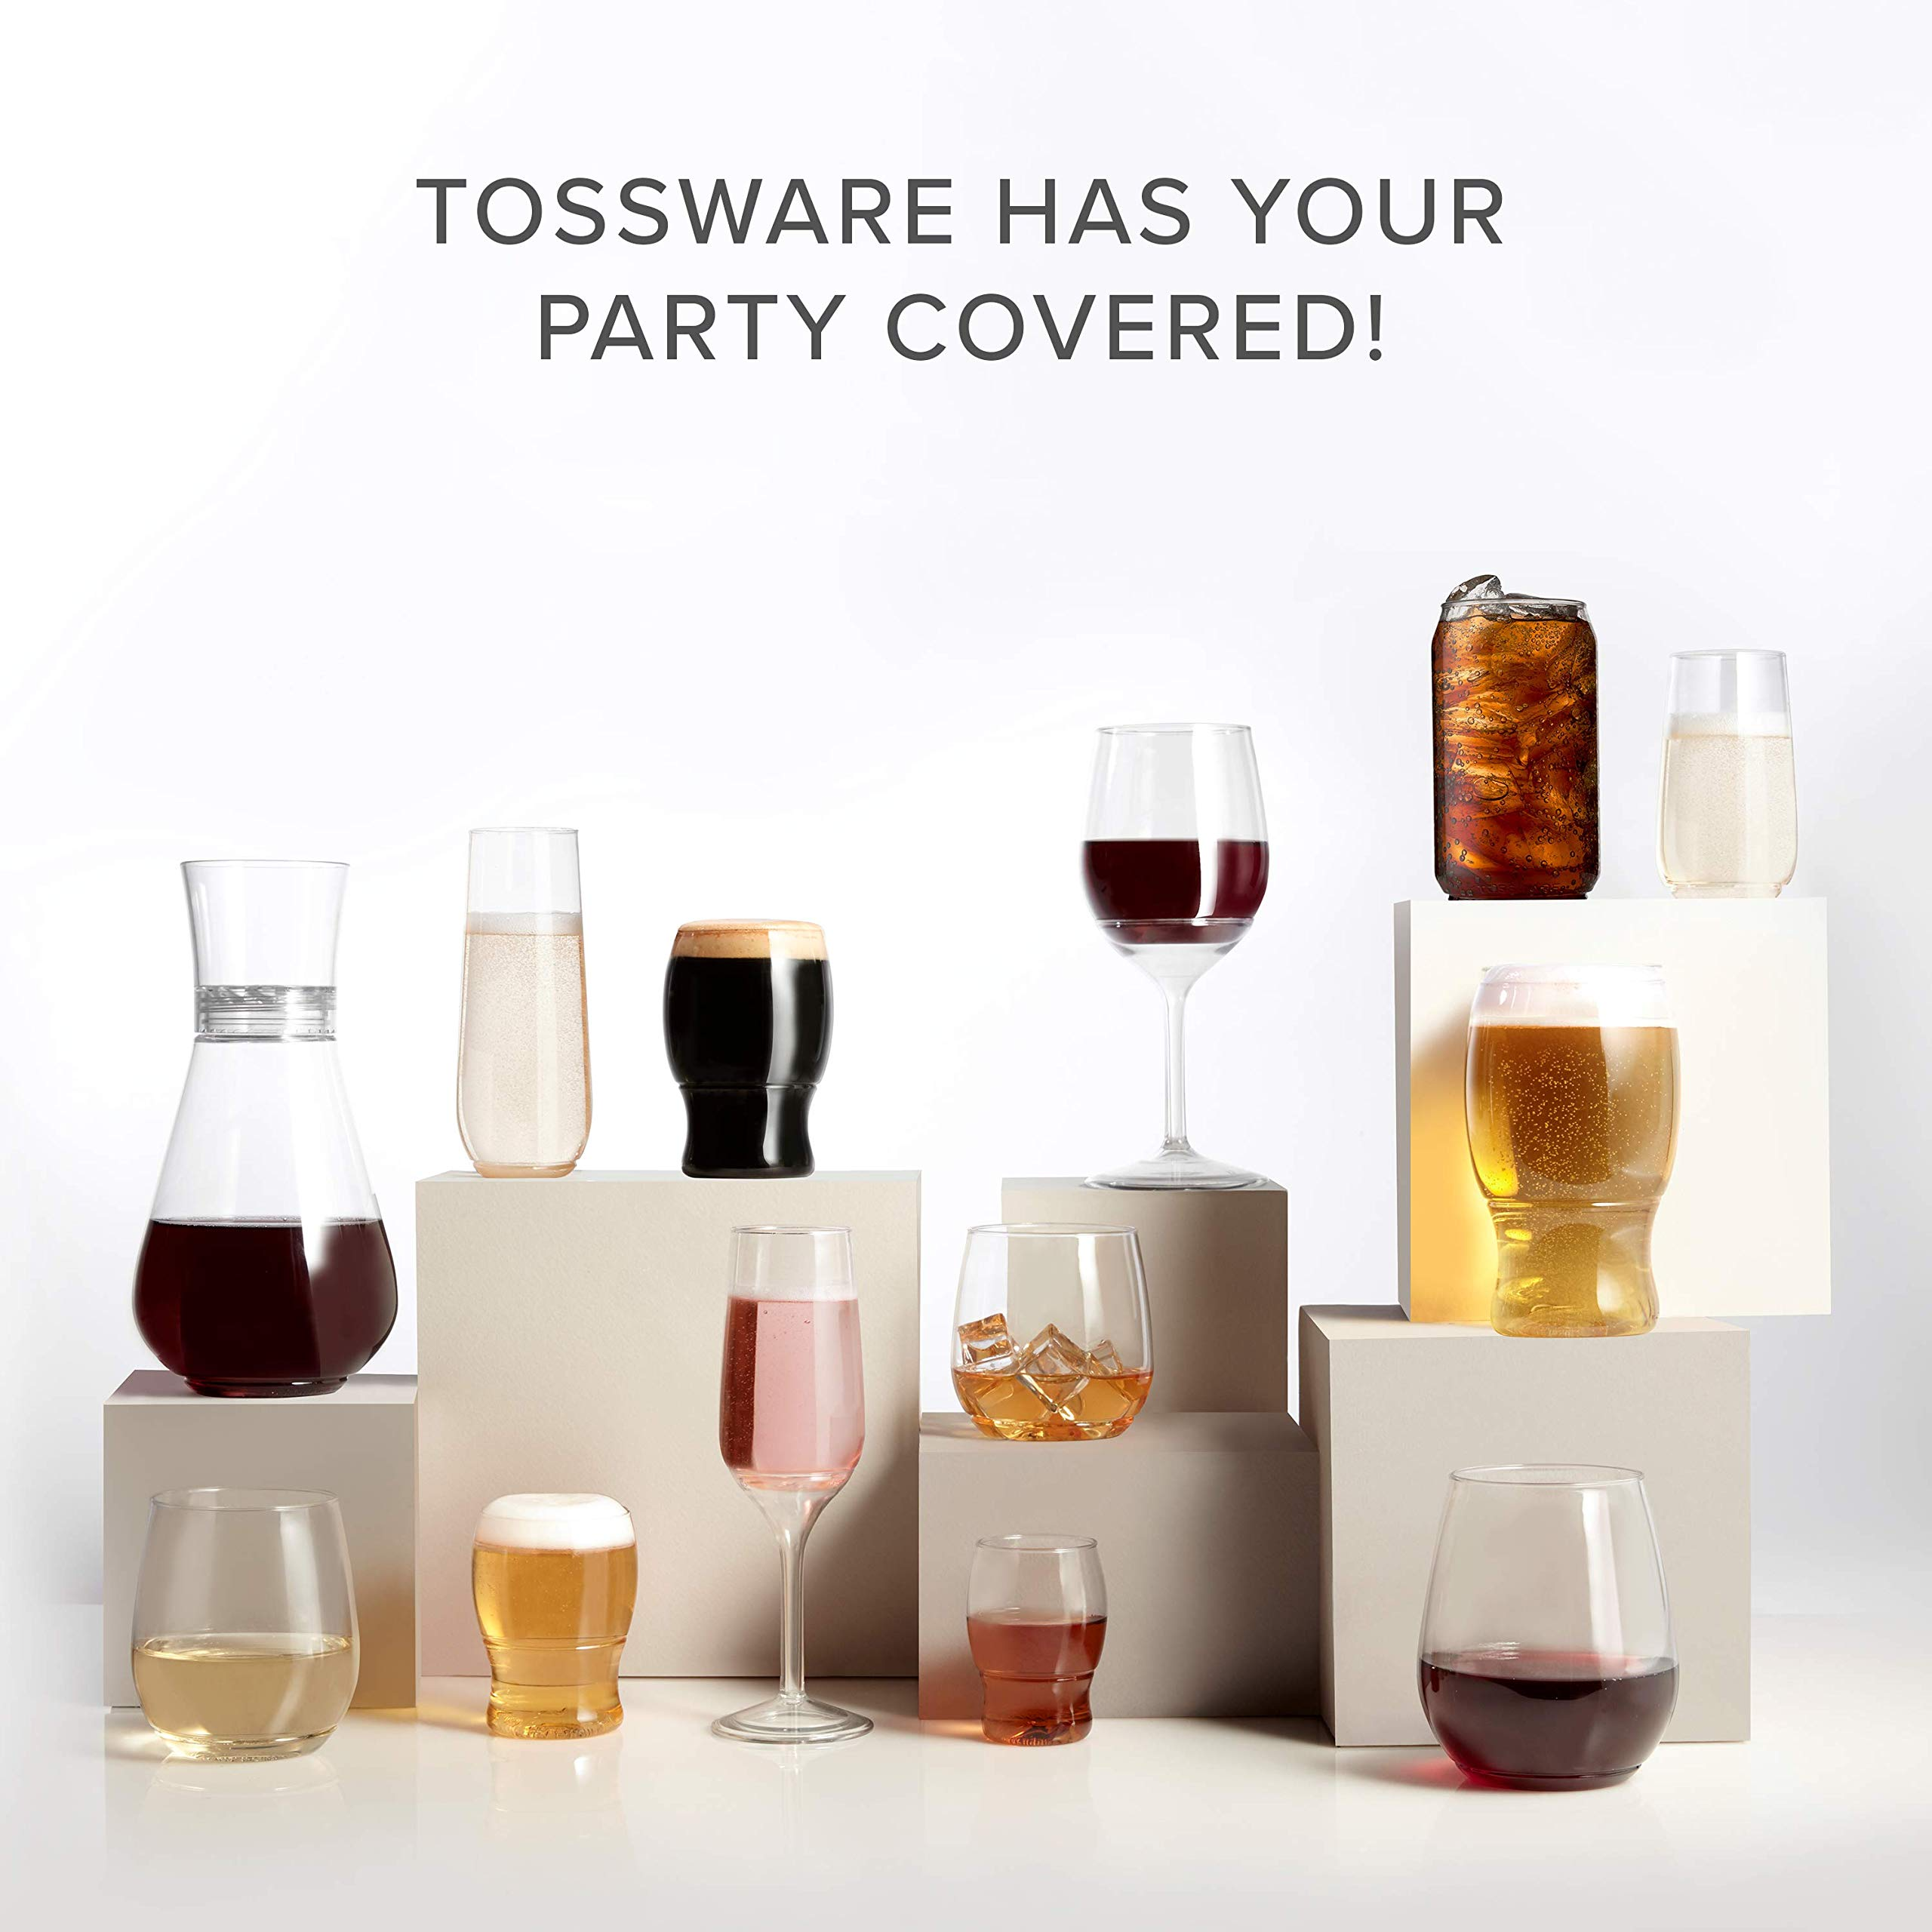 TOSSWARE 28oz Decanter plus Aerator- recyclable plastic decanter- SET OF 1- shatterproof and BPA-free Aerating Decanter by TOSSWARE (Image #8)